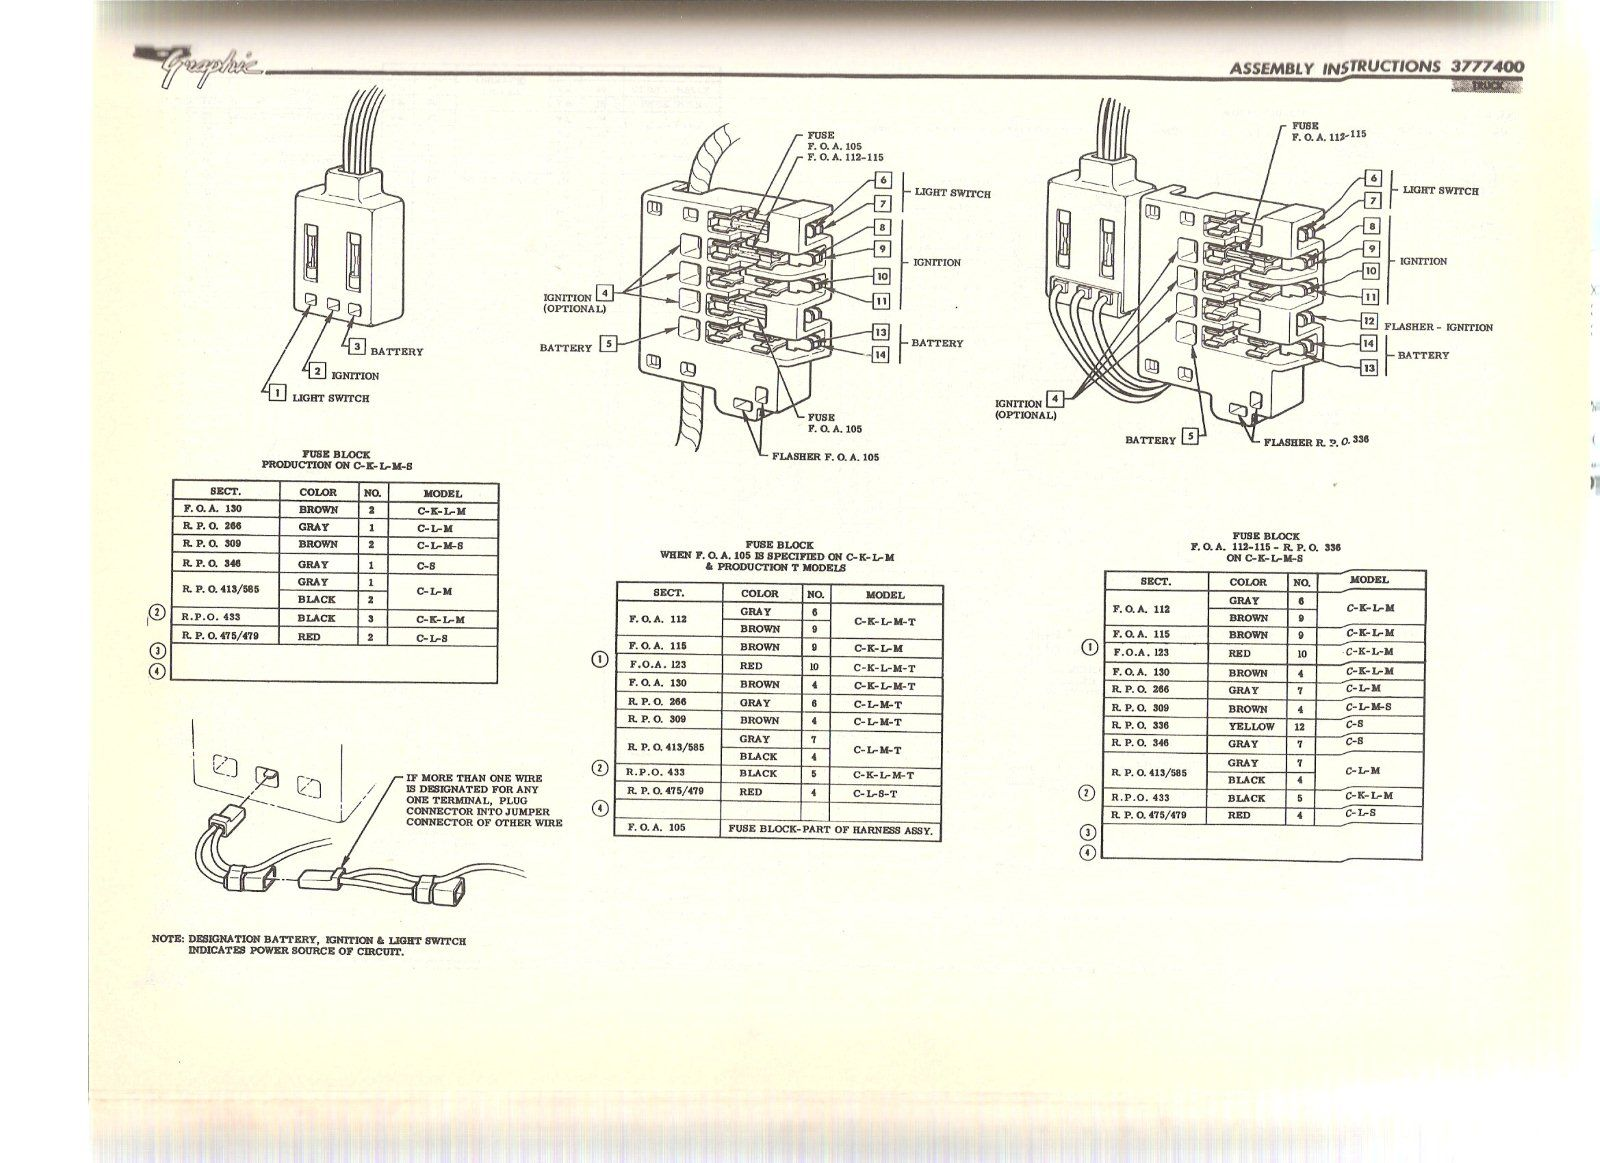 Wiring Diagram The 1947 Present Chevrolet Gmc Truck Message Board Network Trucks 85 Chevy Truck Gmc Truck